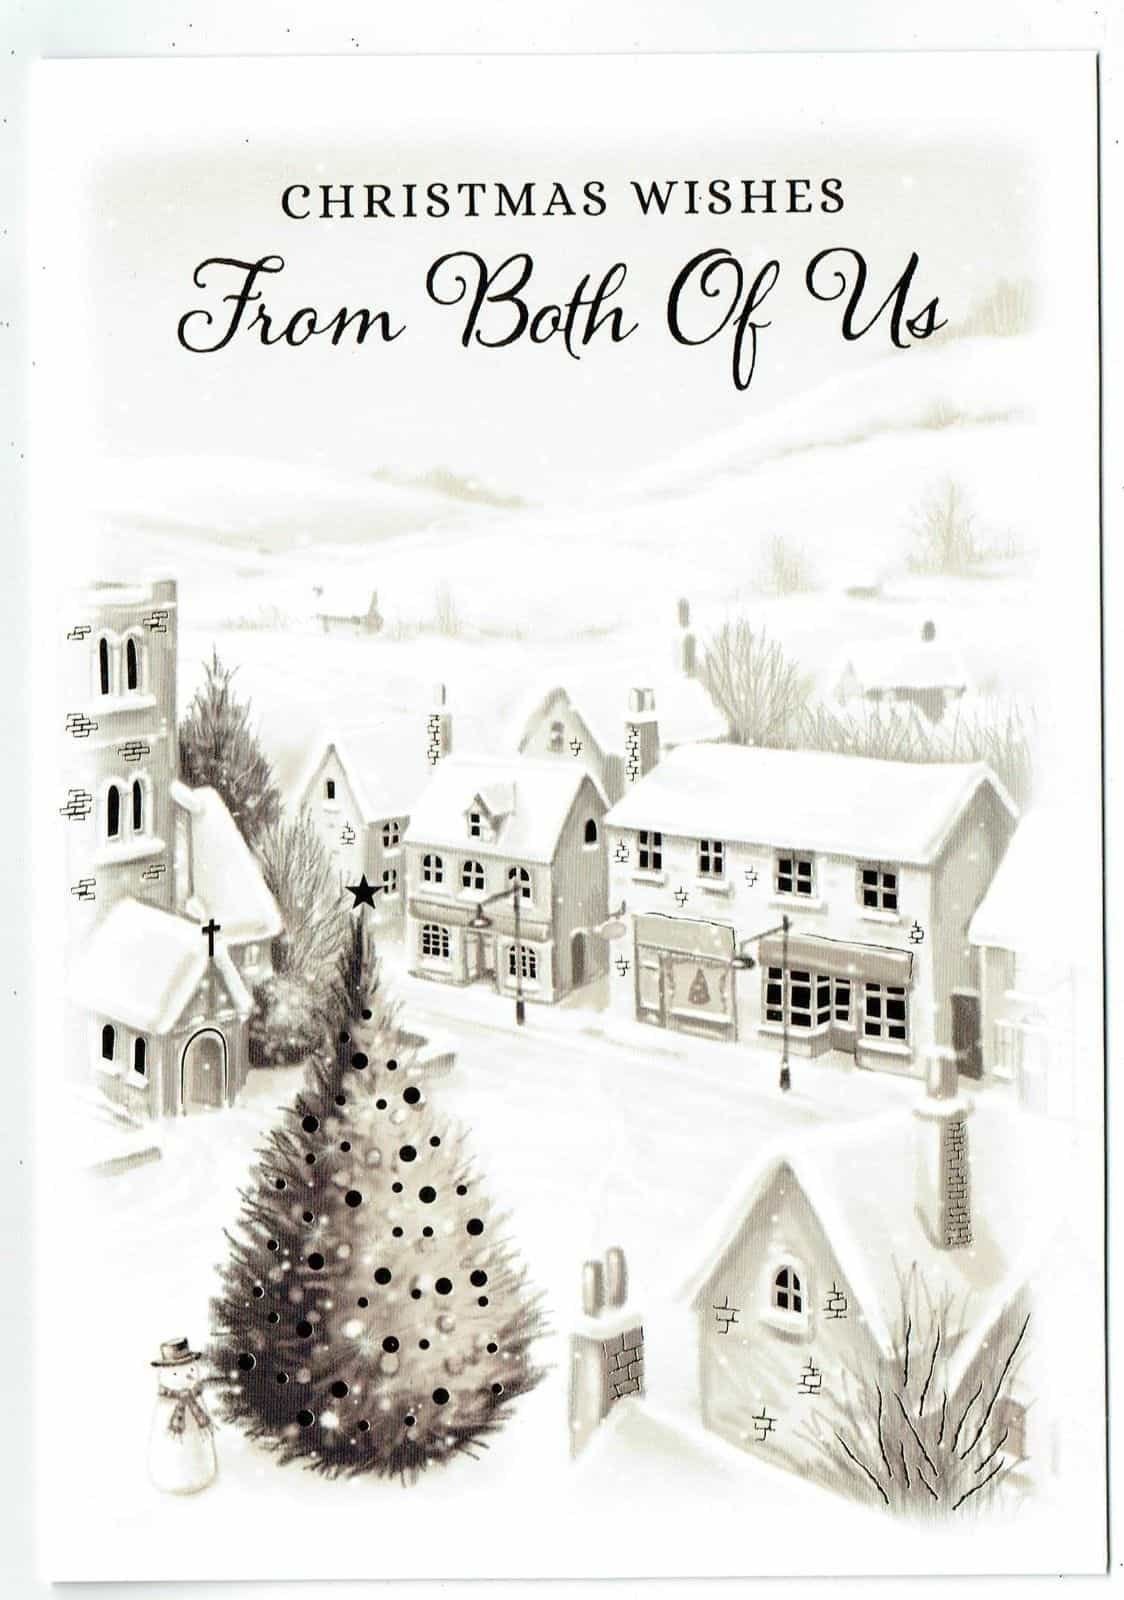 /'From Both Of Us/' Christmas Card With Festive Christmas Scene